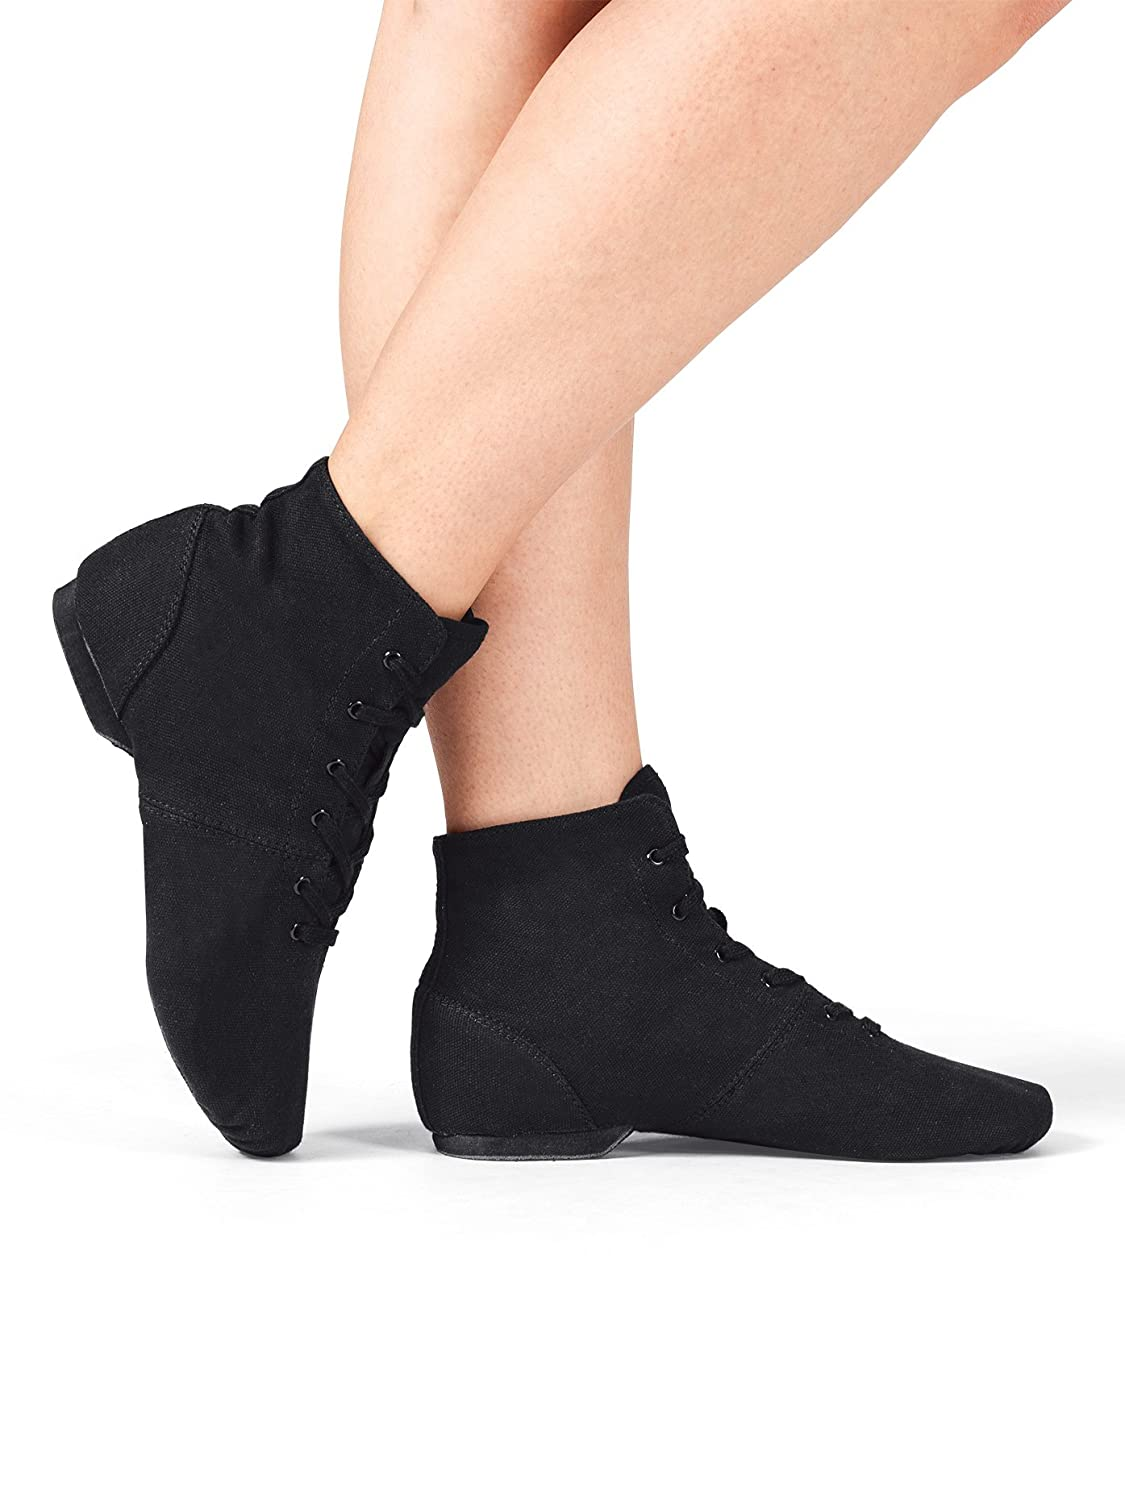 Vintage Boots, Retro Boots Adult Broadway Jazz Over-the-Ankle Canvas Jazz BootT7502 $78.26 AT vintagedancer.com